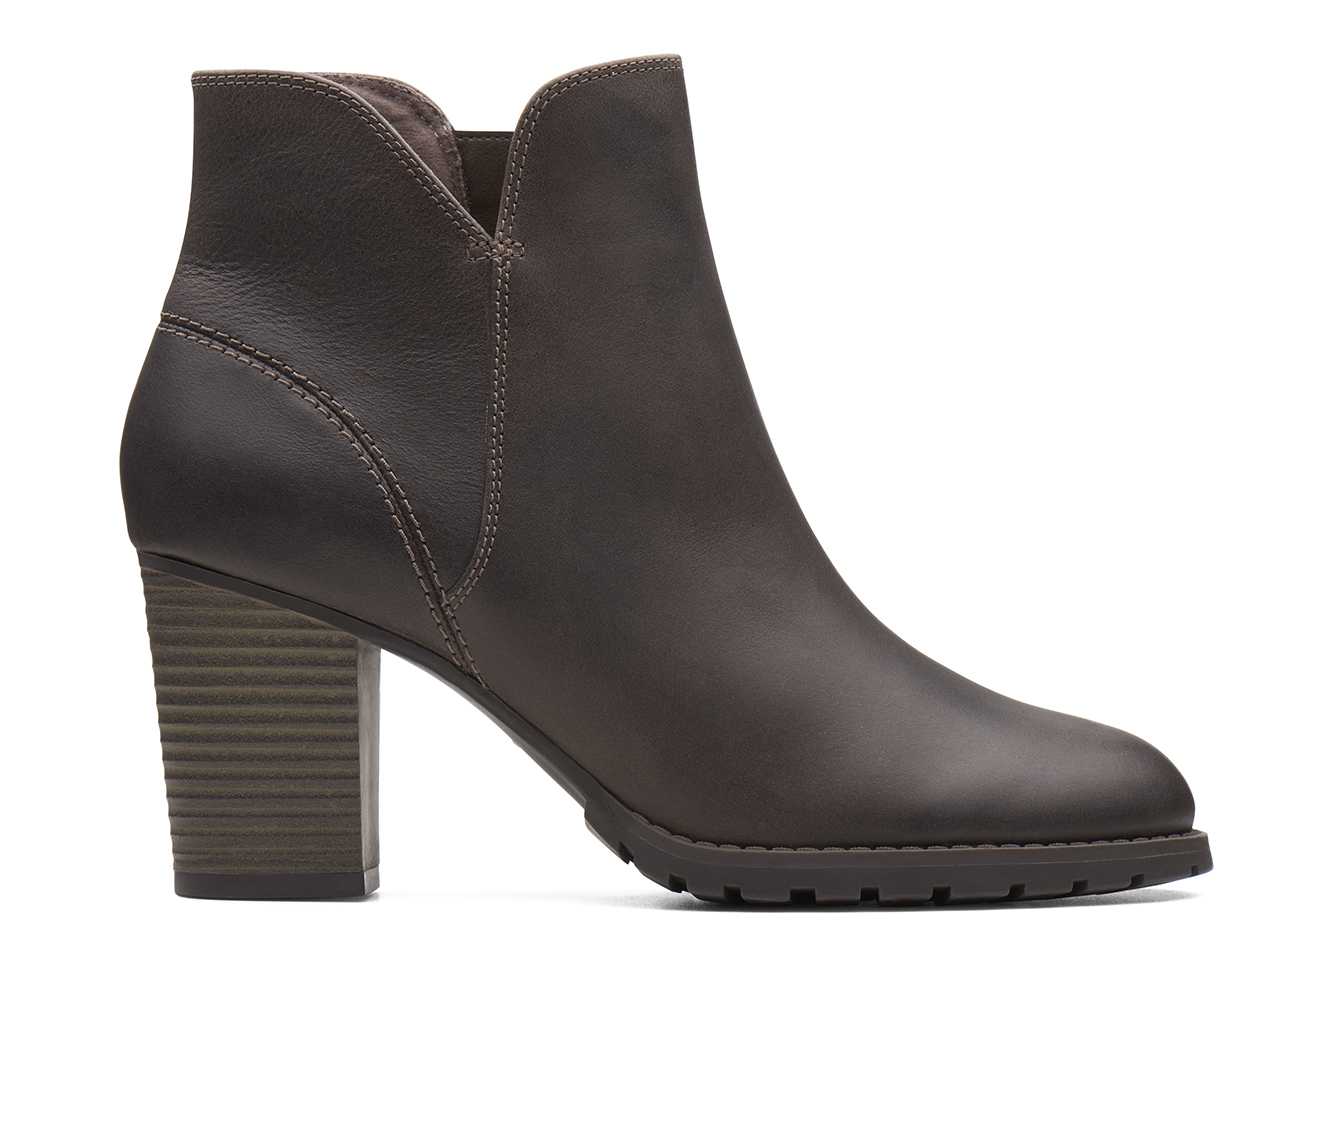 Clarks Verona Trish Women's Boots (Gray - Leather)